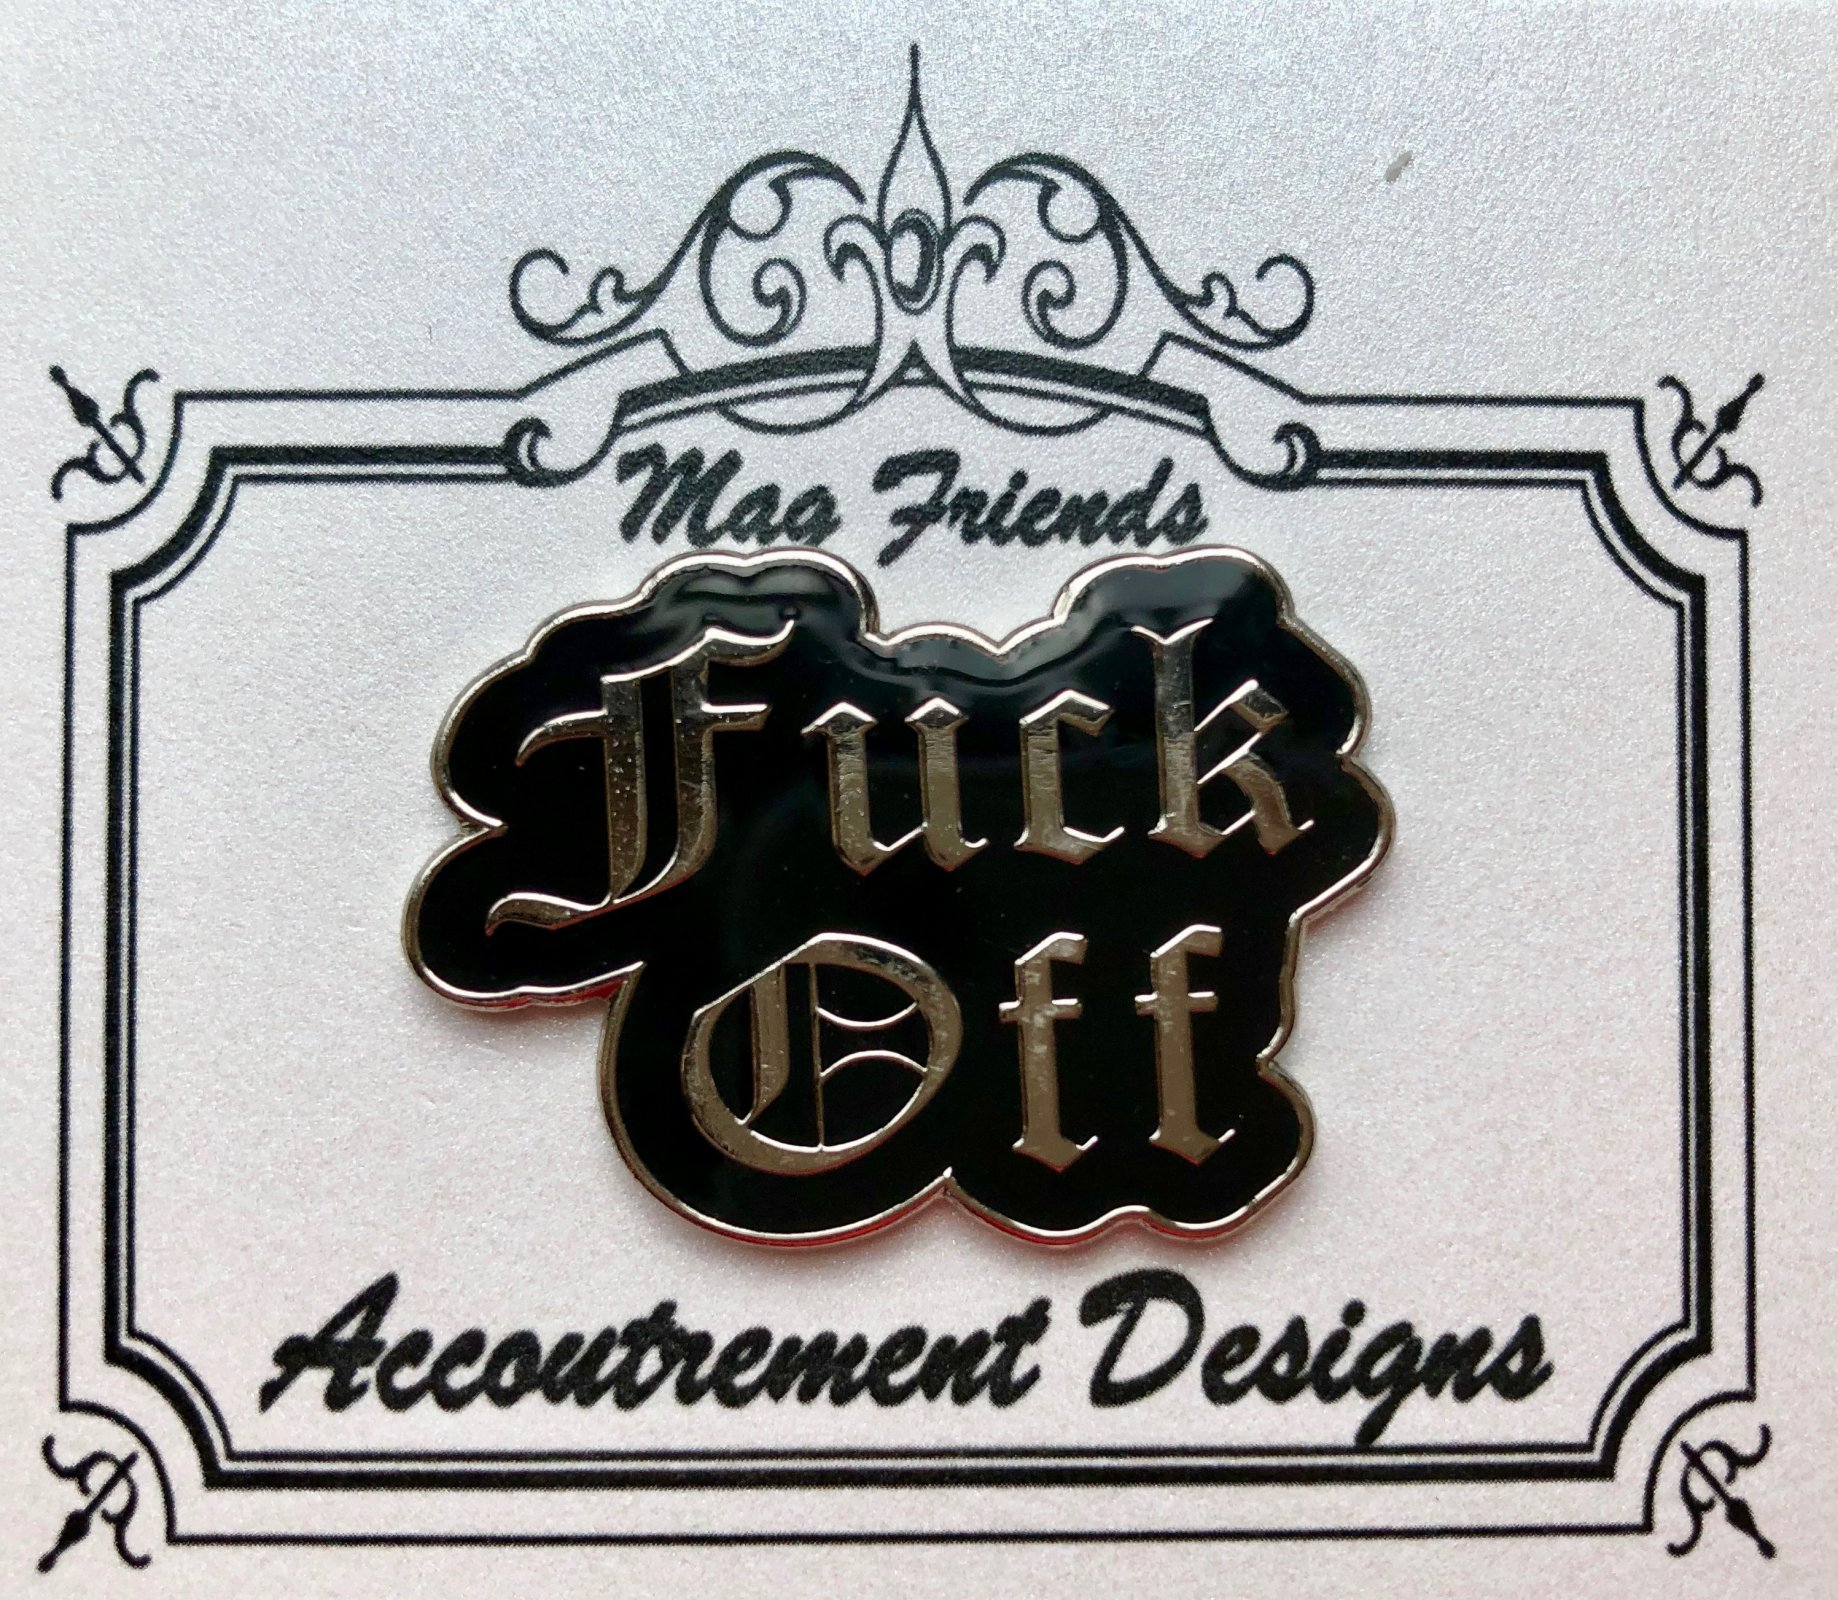 Accoutrement Designs F*ck Off needle minder